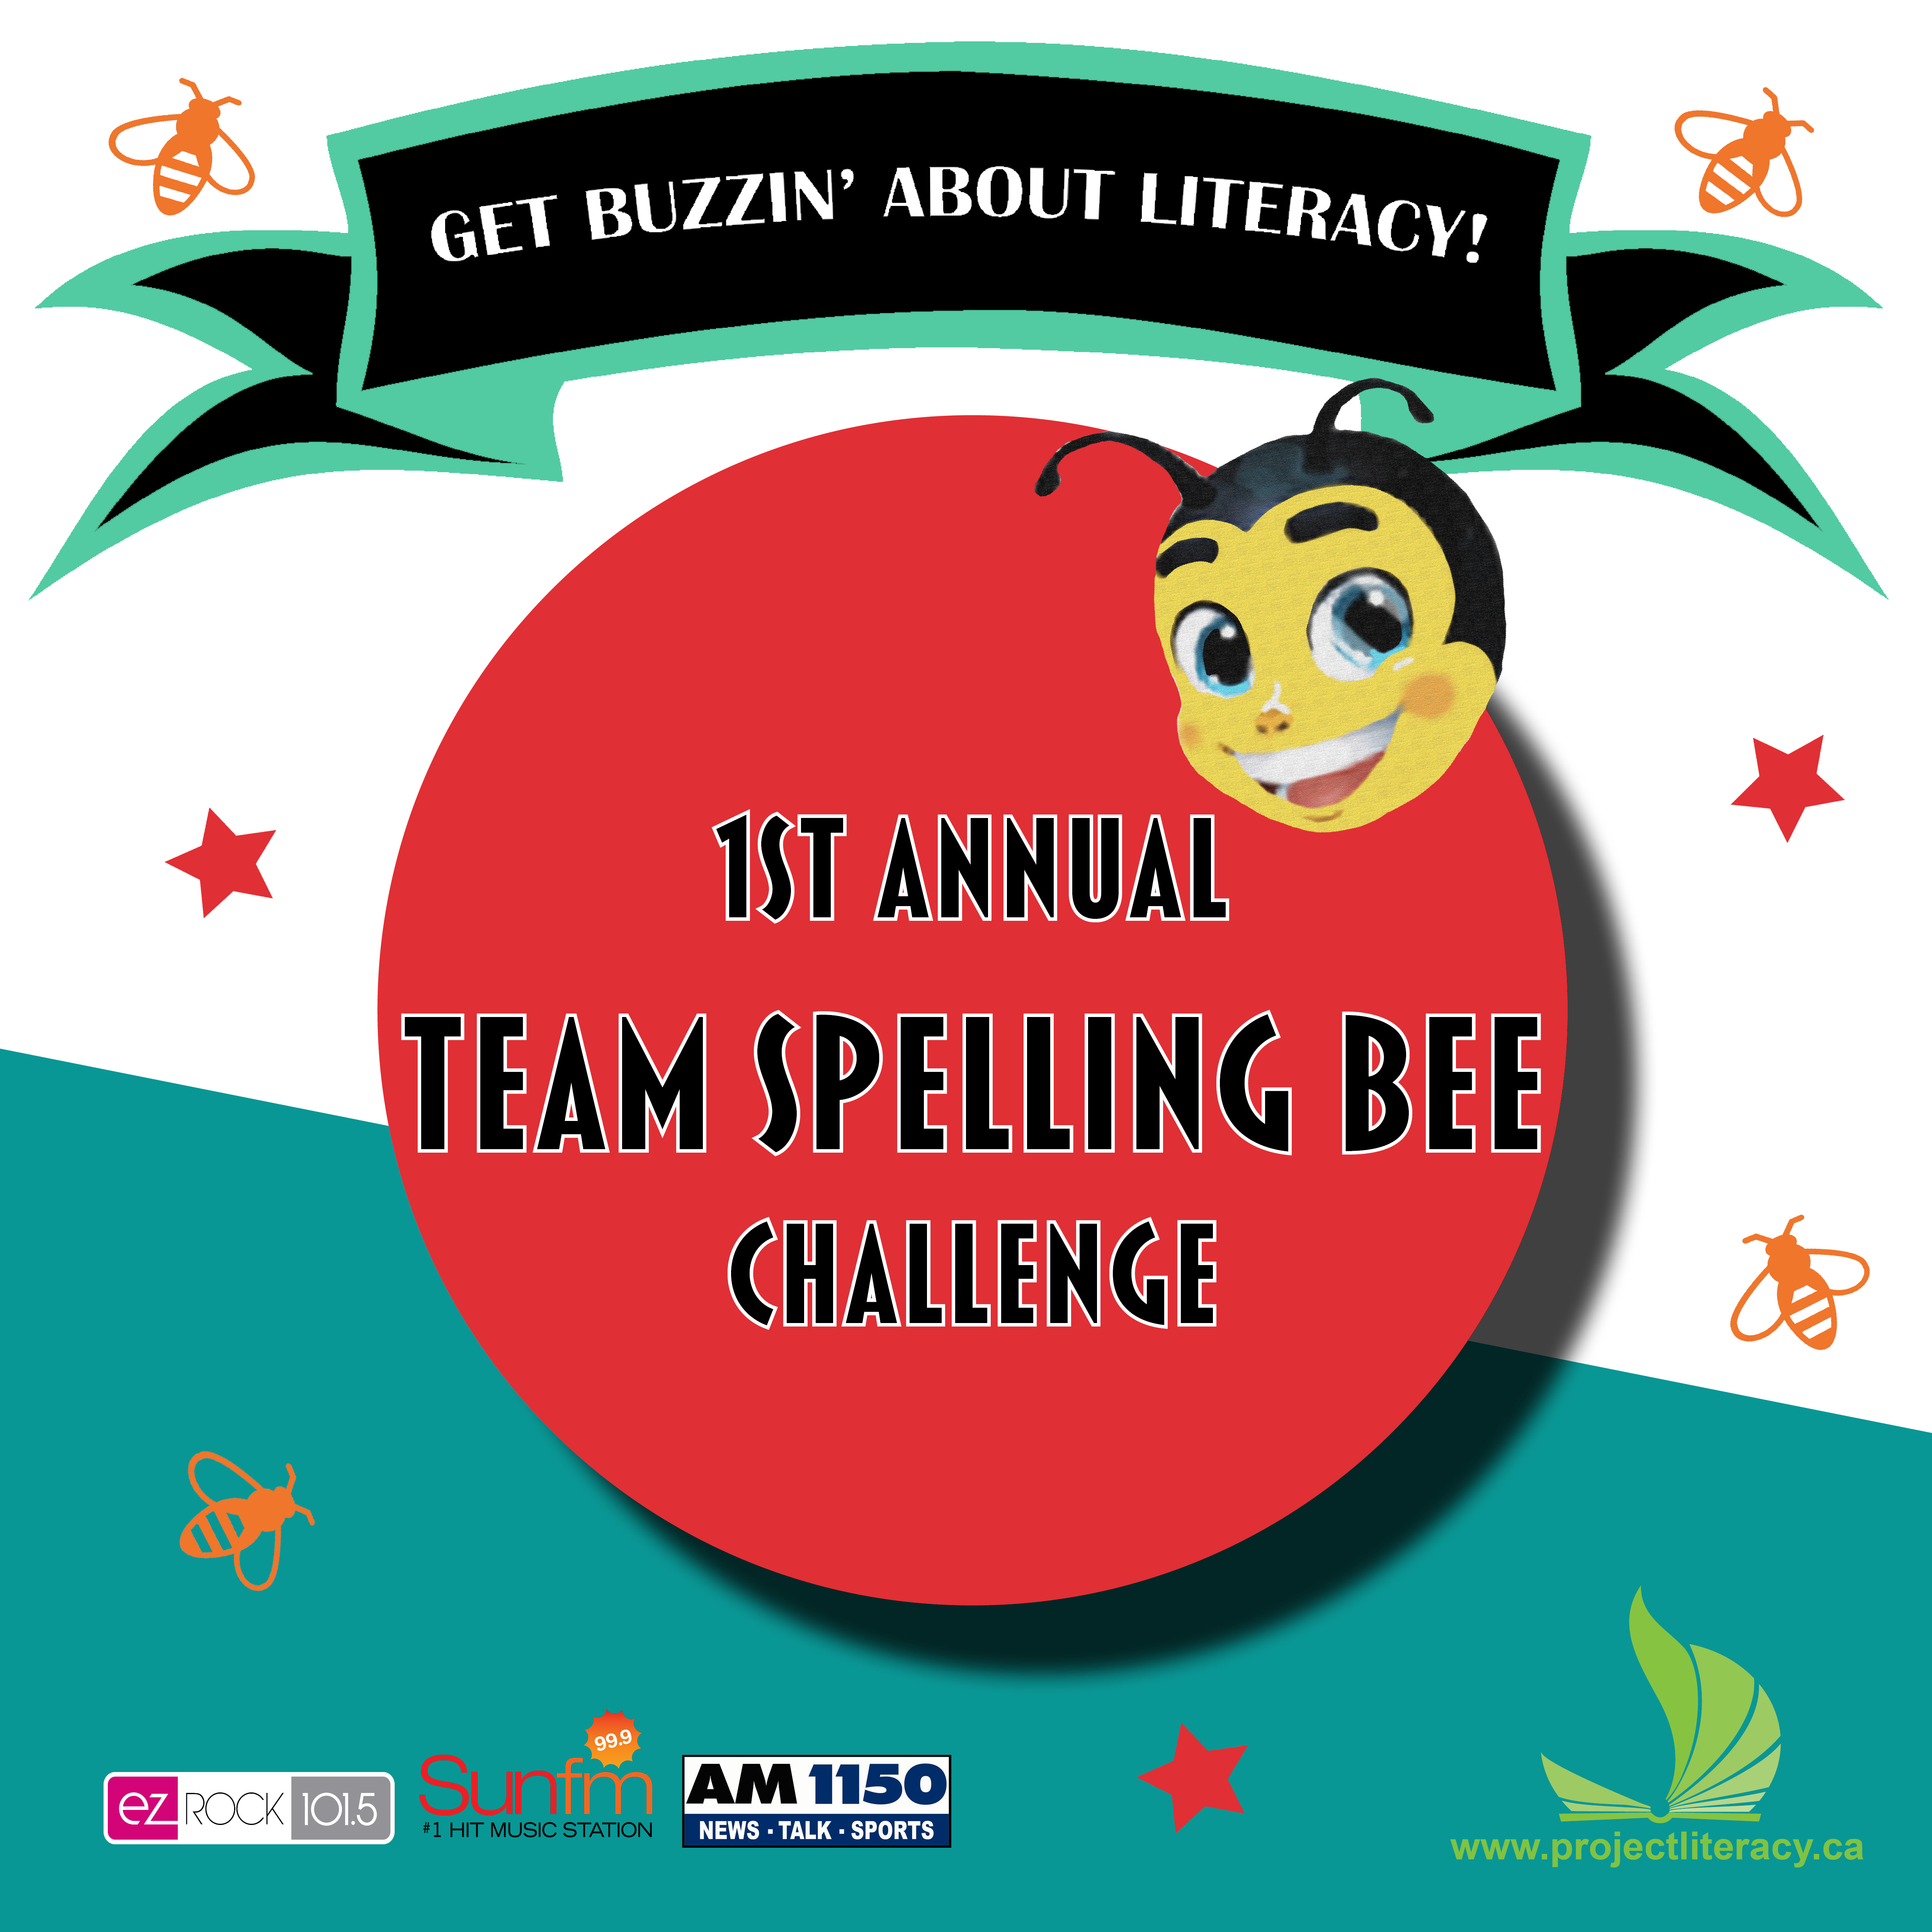 First Annual Team Spelling Bee Challenge